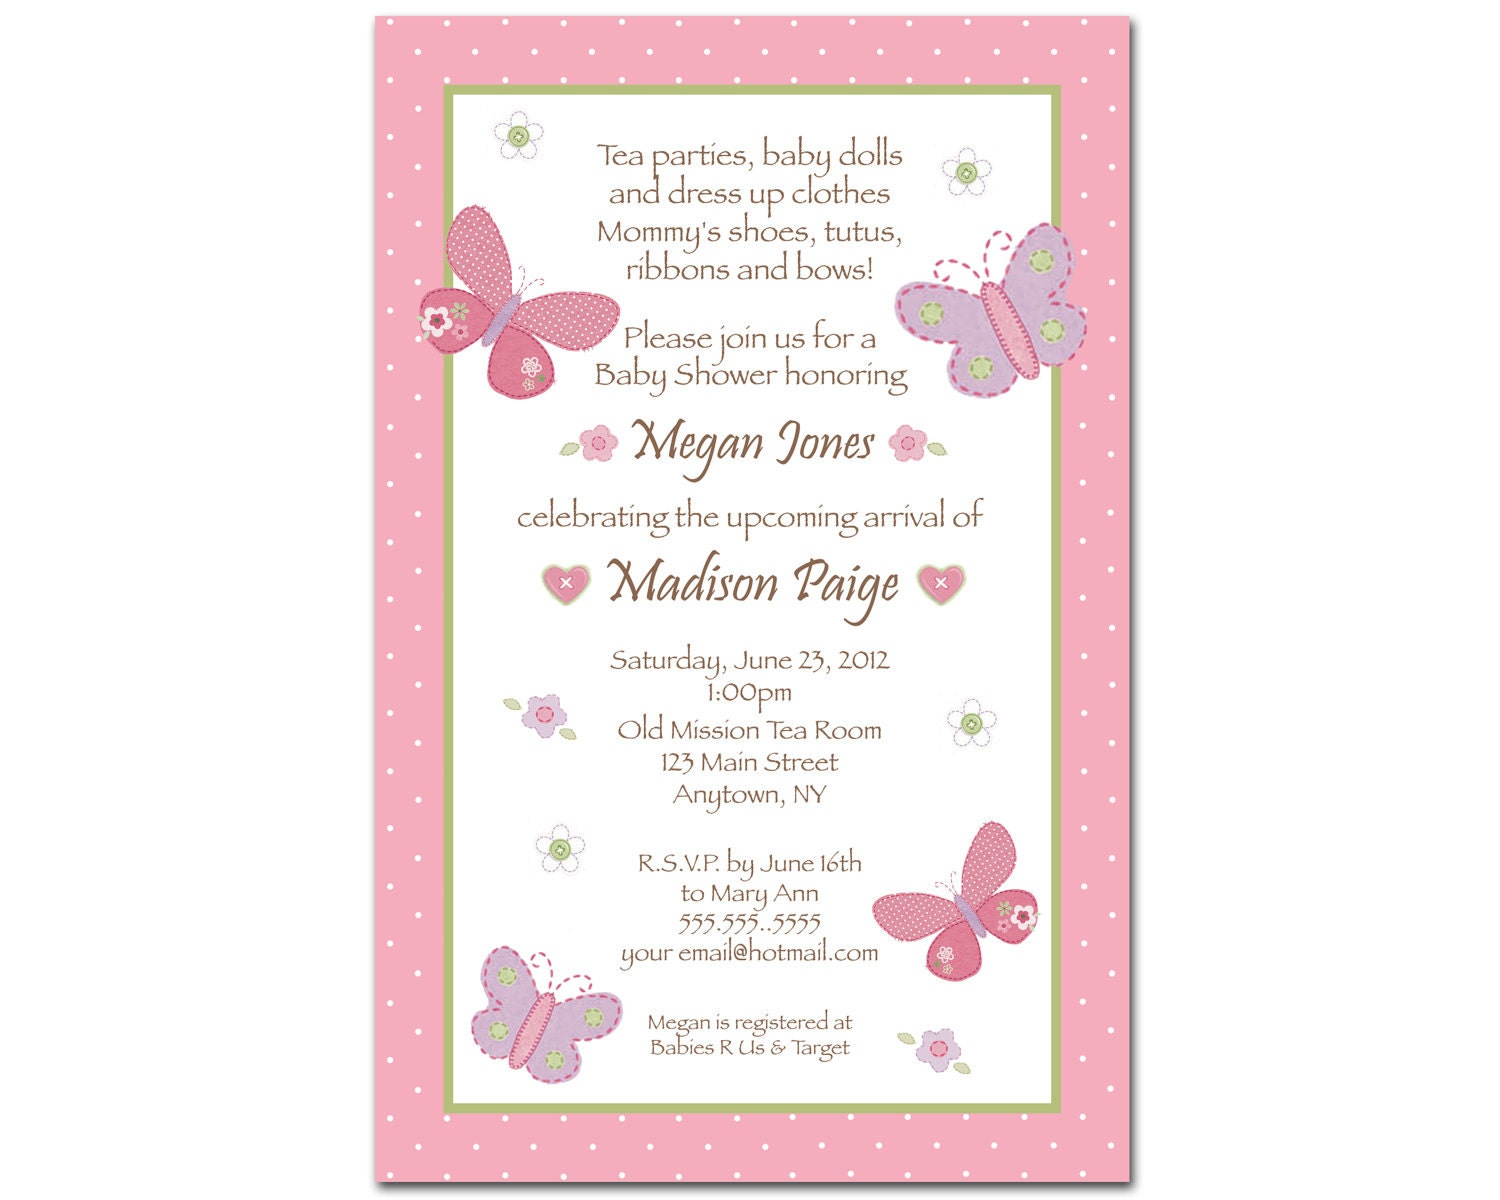 carter 39 s baby girl baby shower invitations by bdesigns4you